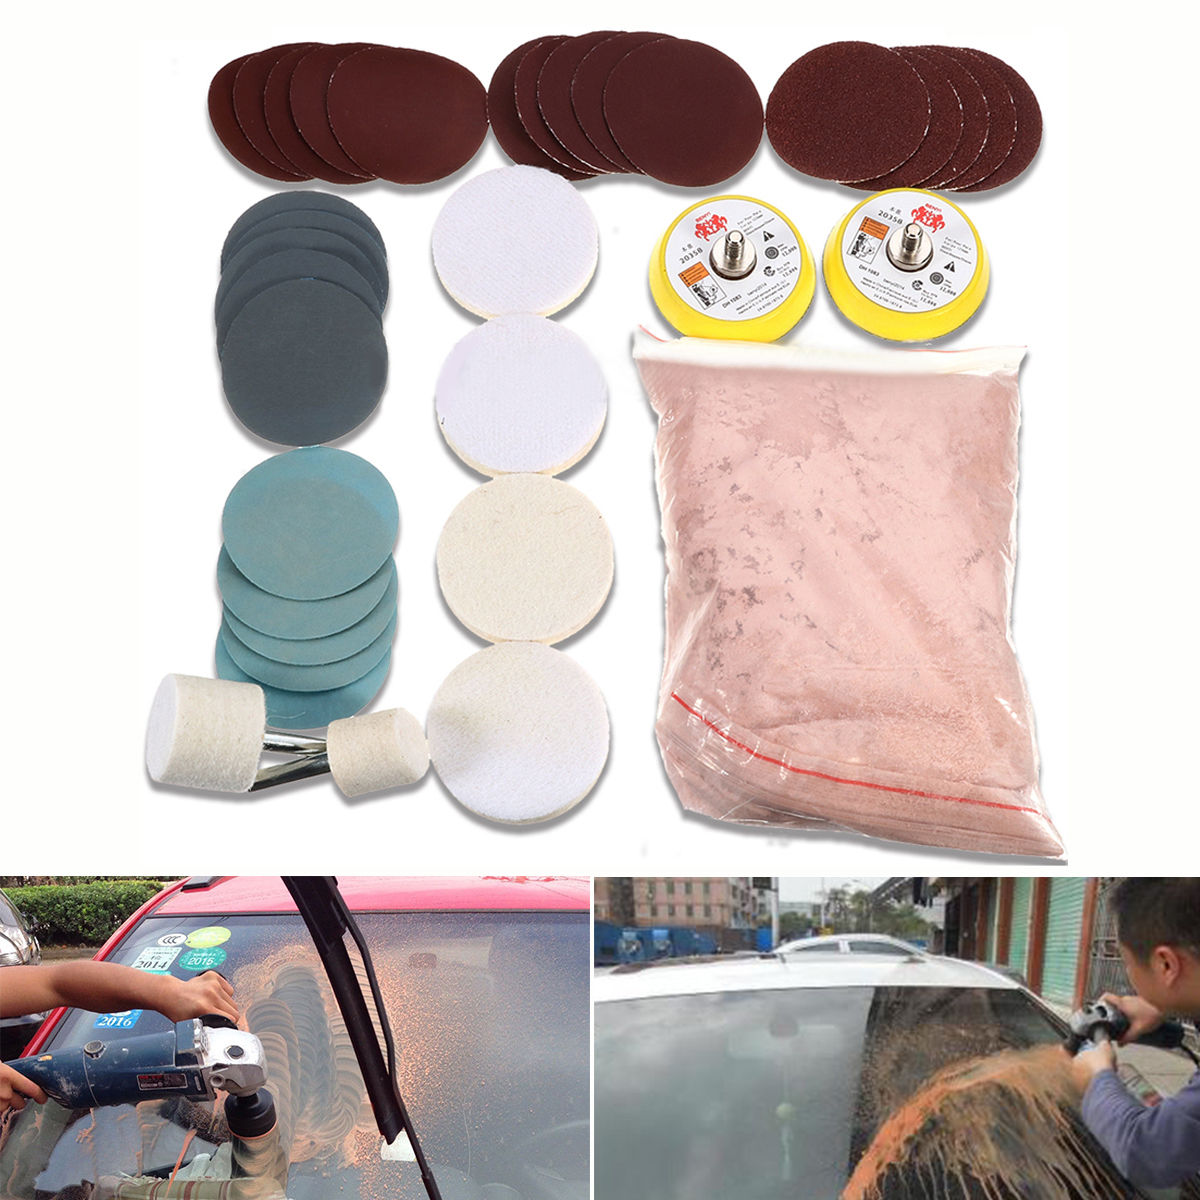 34Pcs Deep Scratch Remove Glass Polishing Kit 8Oz Cerium Oxide Sanding Disc Wool Polishing Pads Felt Polishing Wheel DIY Tools